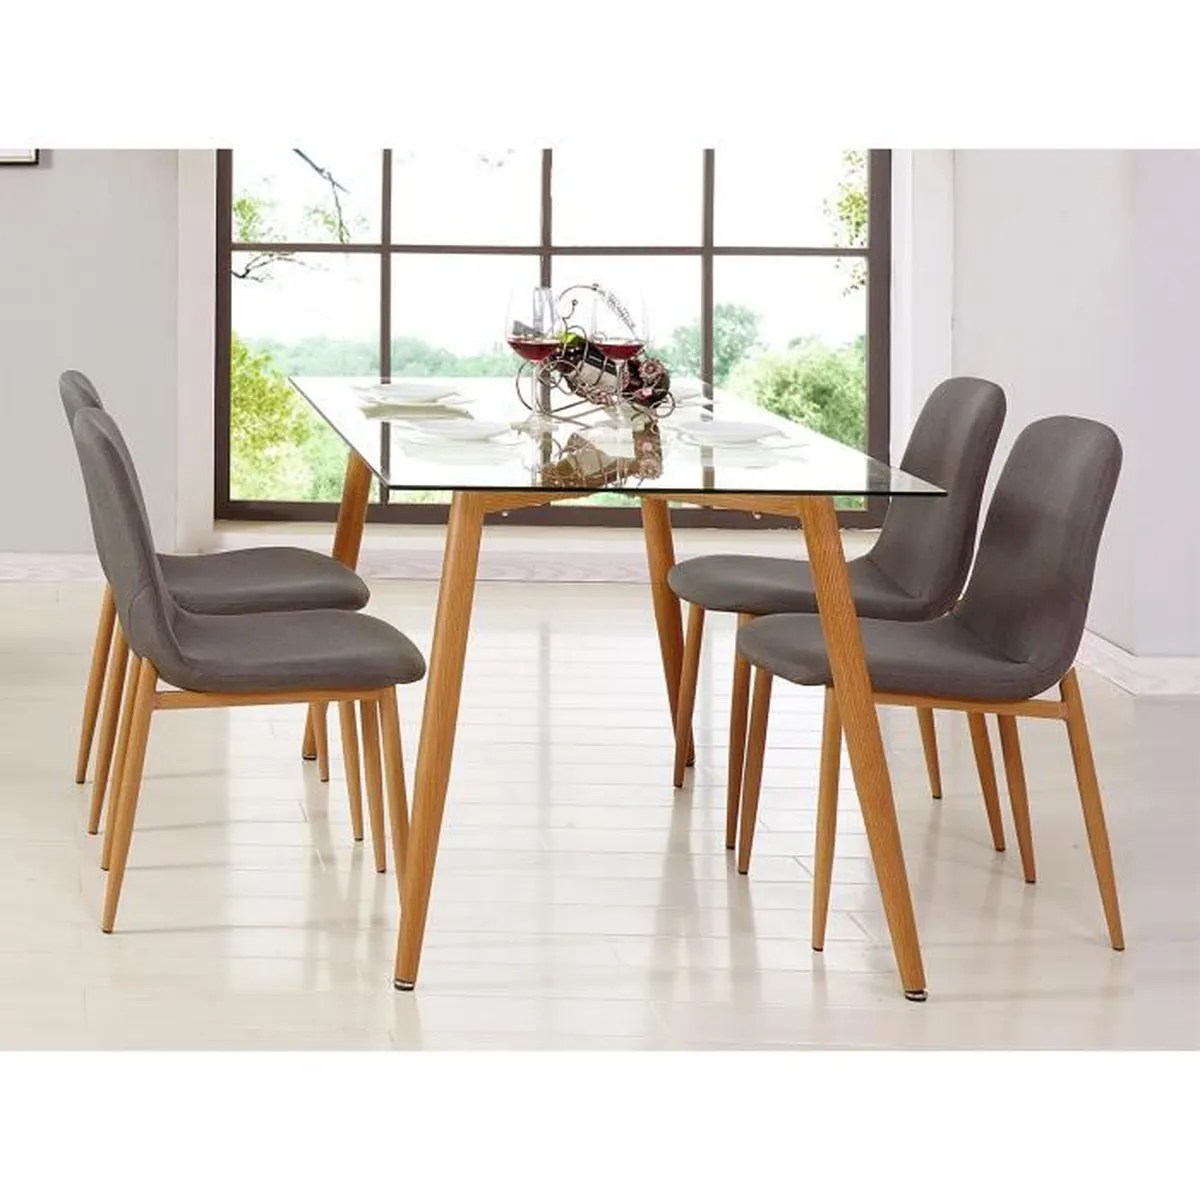 Table Chaises Scandinaves Table En Verre 4 Chaises Scandinave Nordi